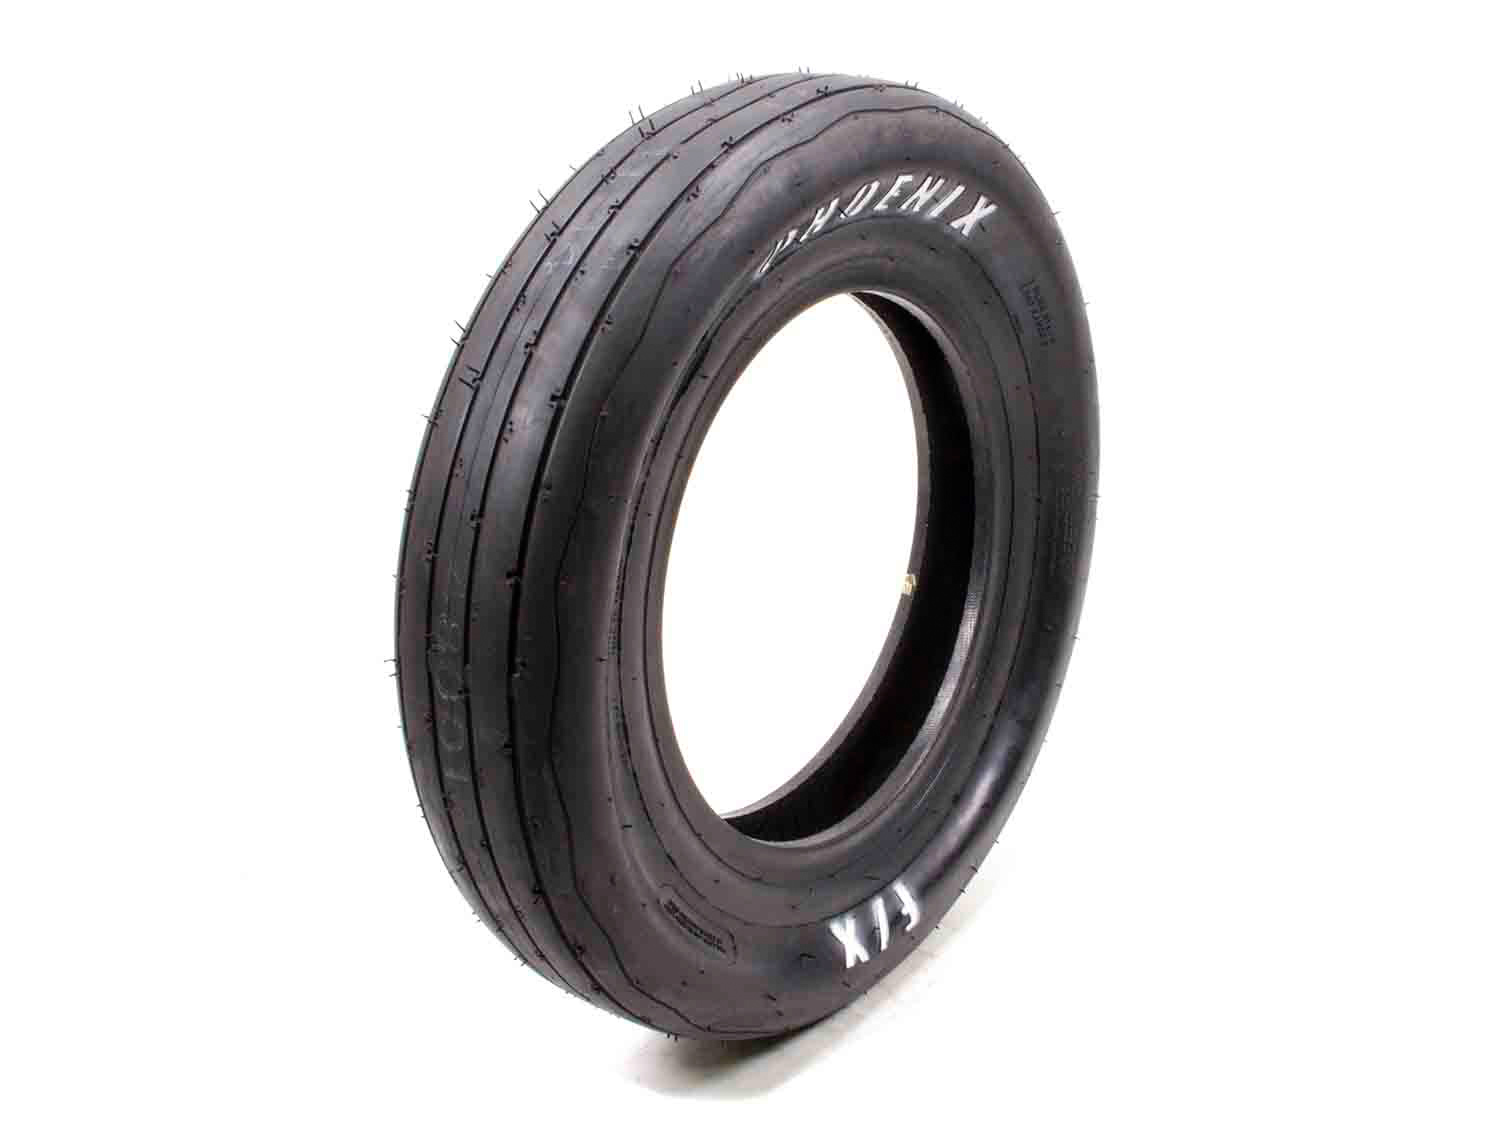 Phoenix Racing Tires PH180 Tire, Drag FX Front, 26.0 x 4.5-15, Bias Ply, DE Compound, White Letter Sidewall, Each